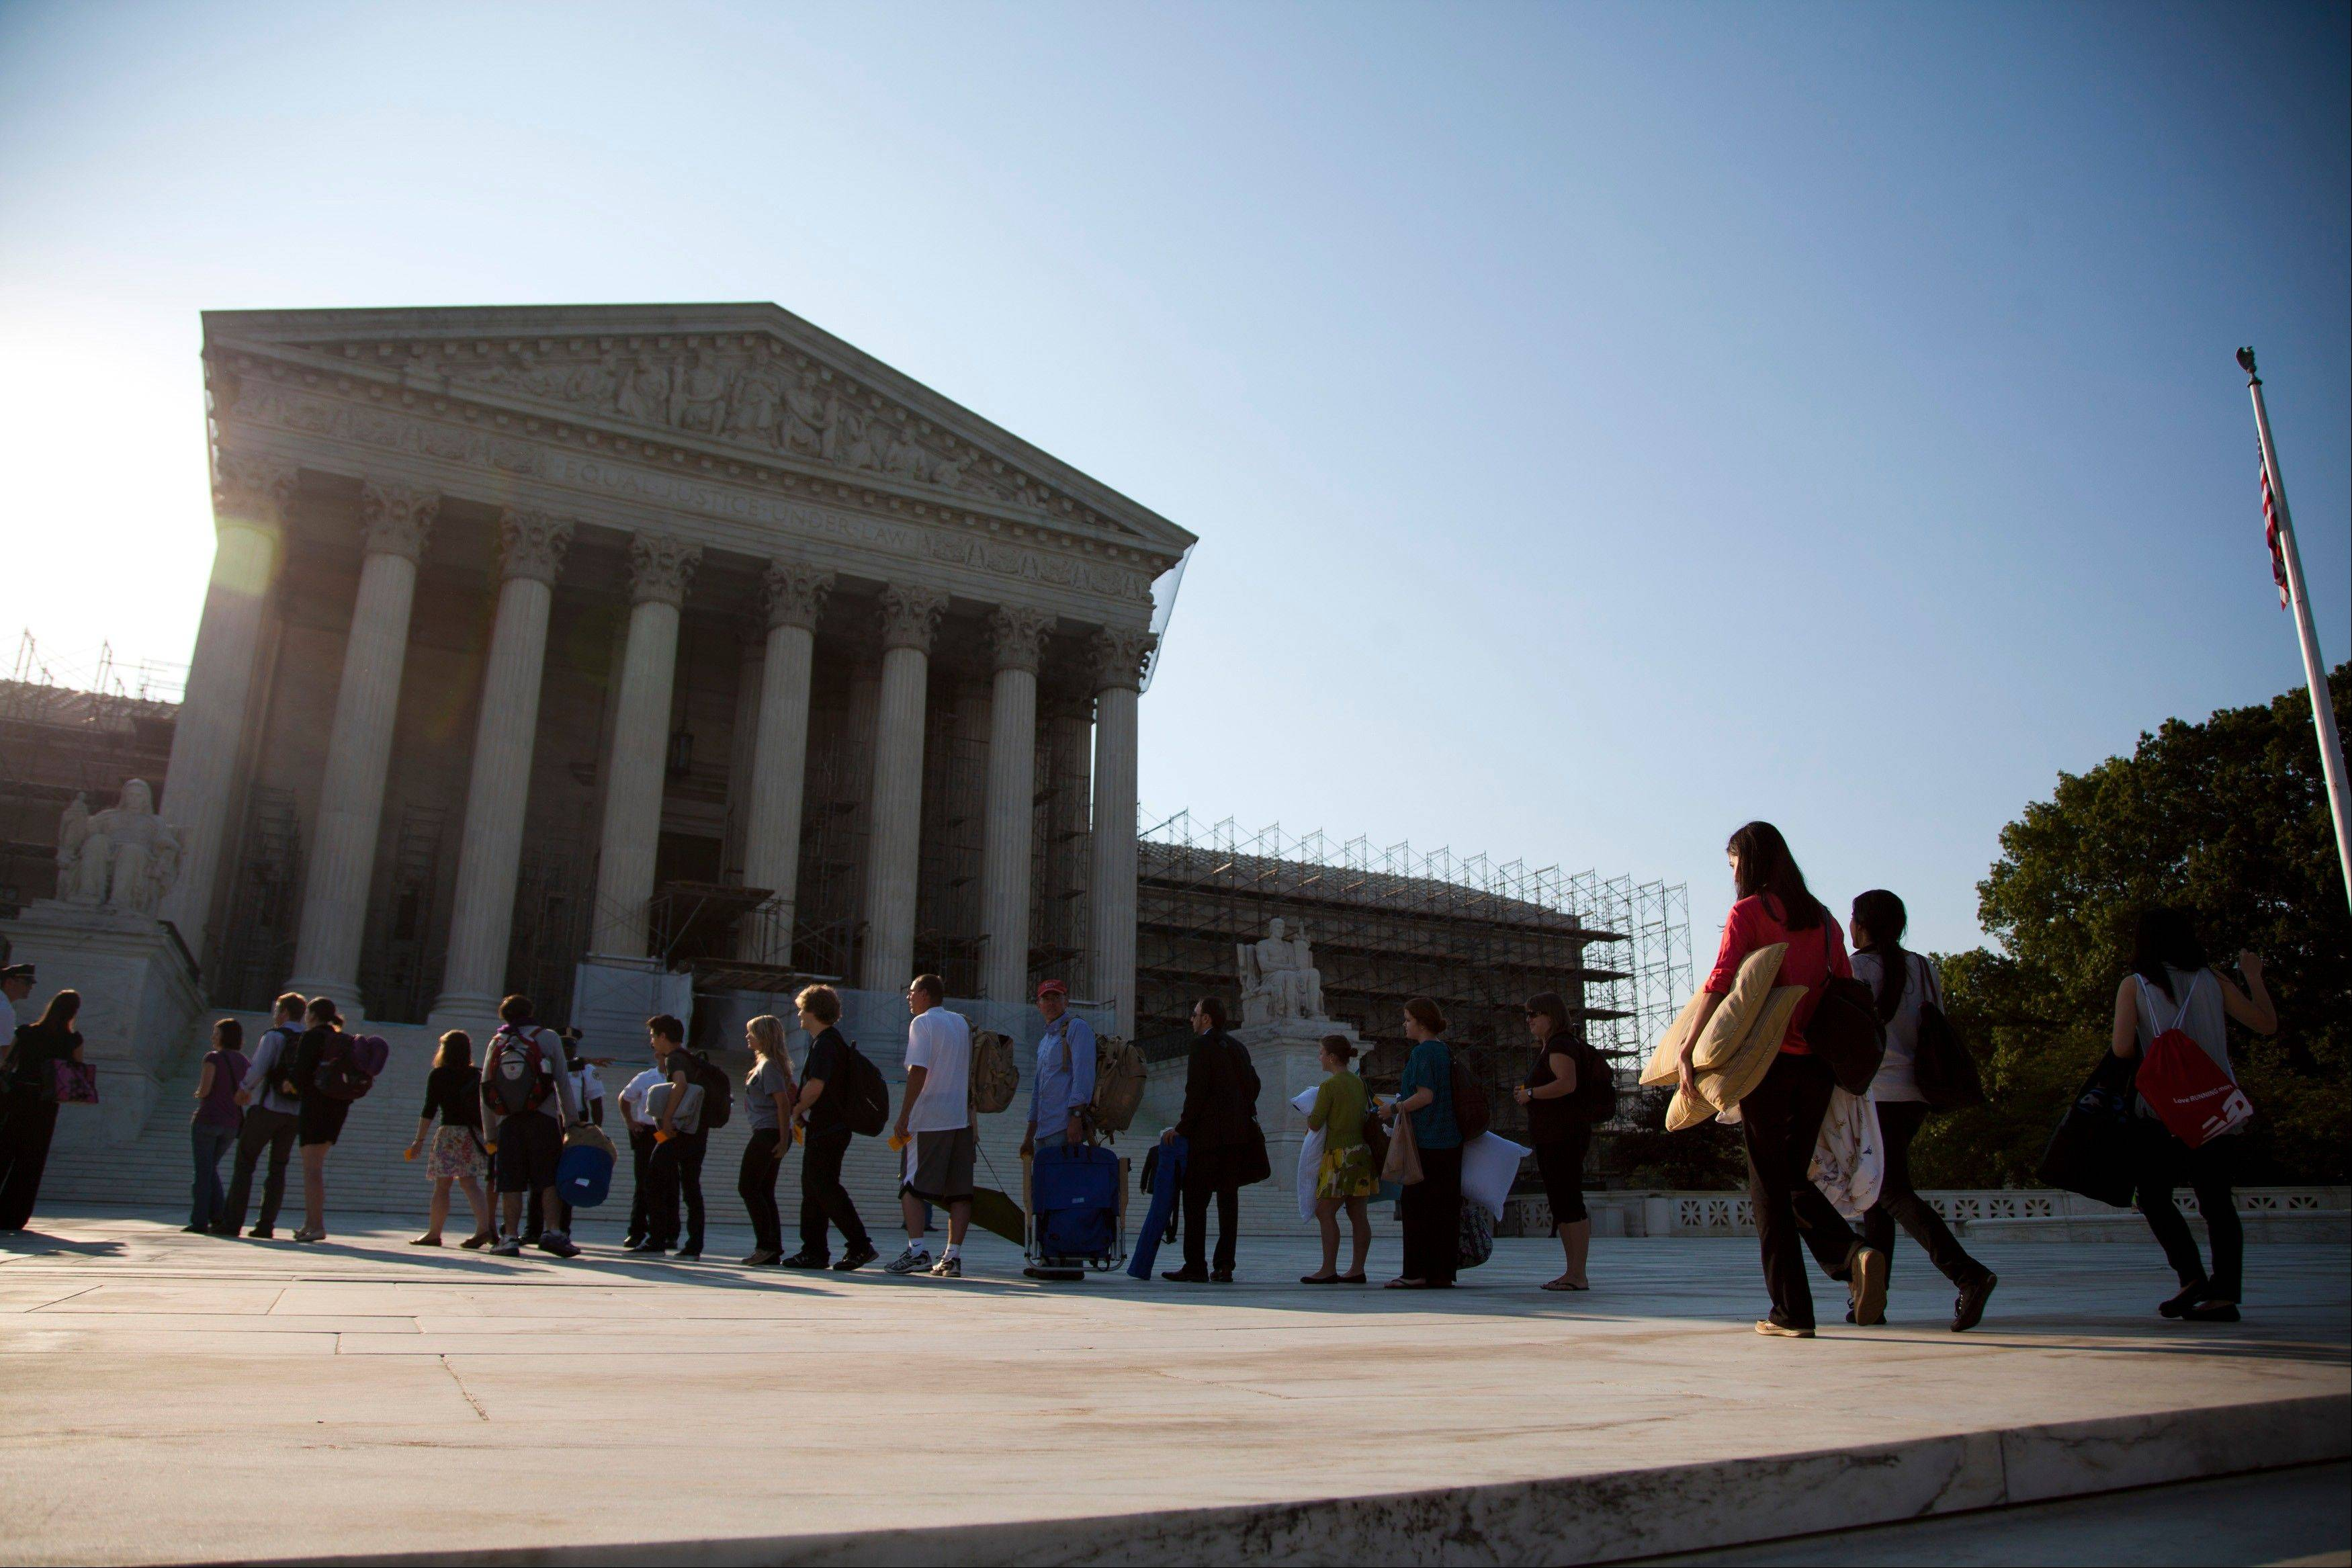 People who waited in line overnight to hear the Supreme Court on a landmark case on health care hold their belongings as they make their way into the court in Washington, Thursday, June 28, 2012.